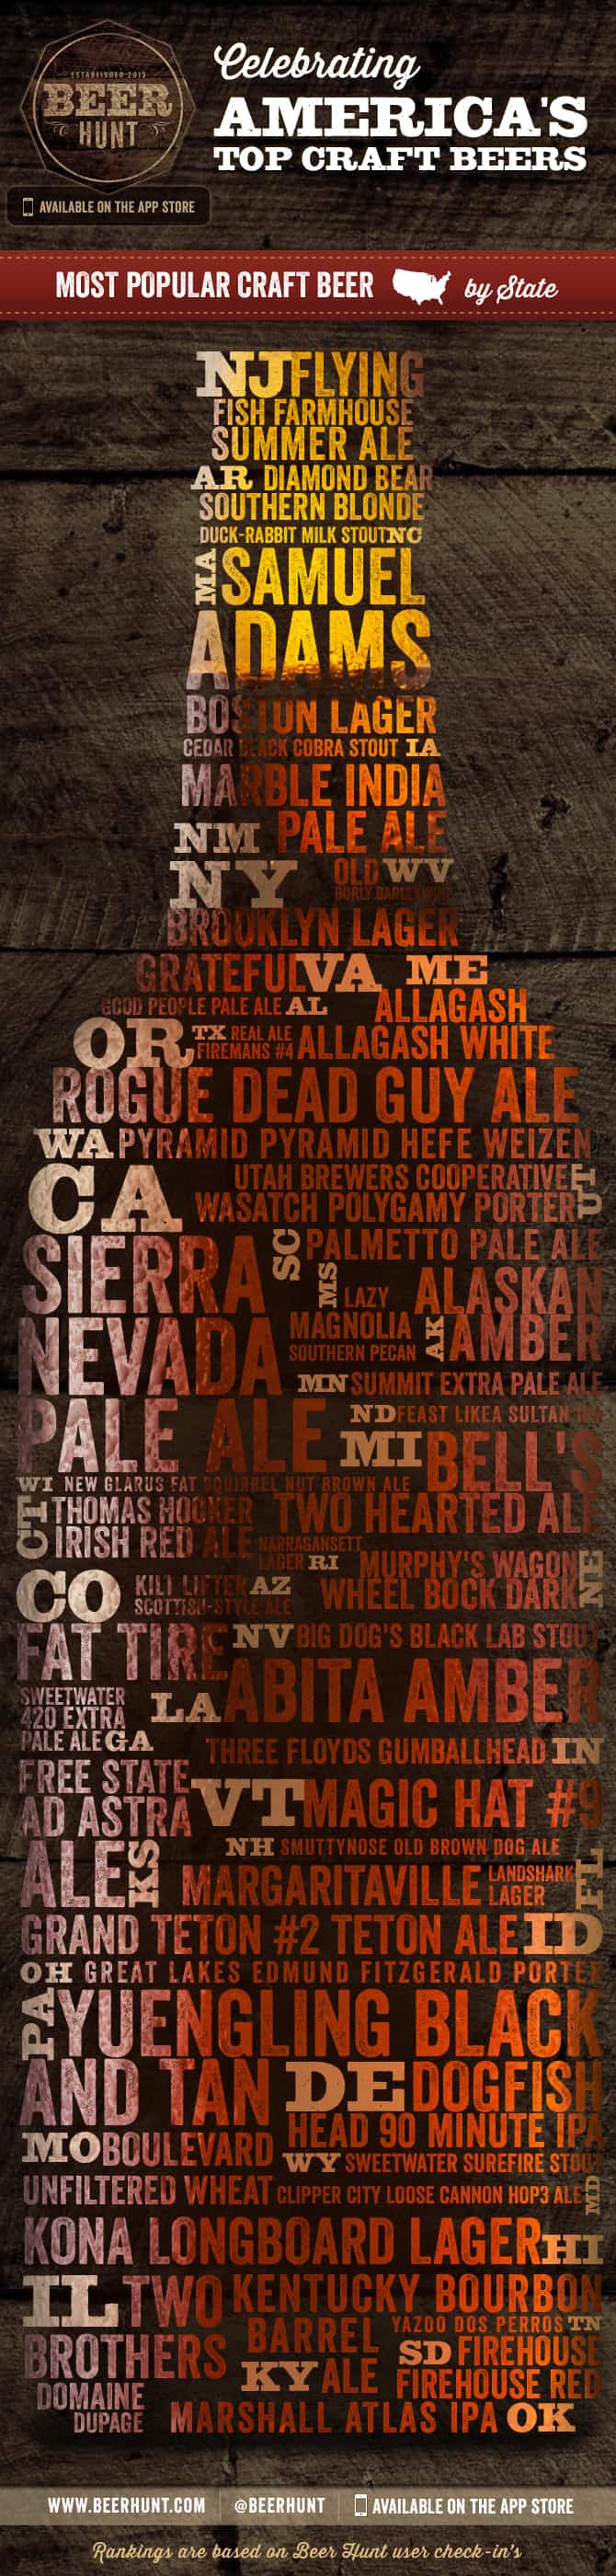 Most Popular Craft Beer By State Infographic Daily